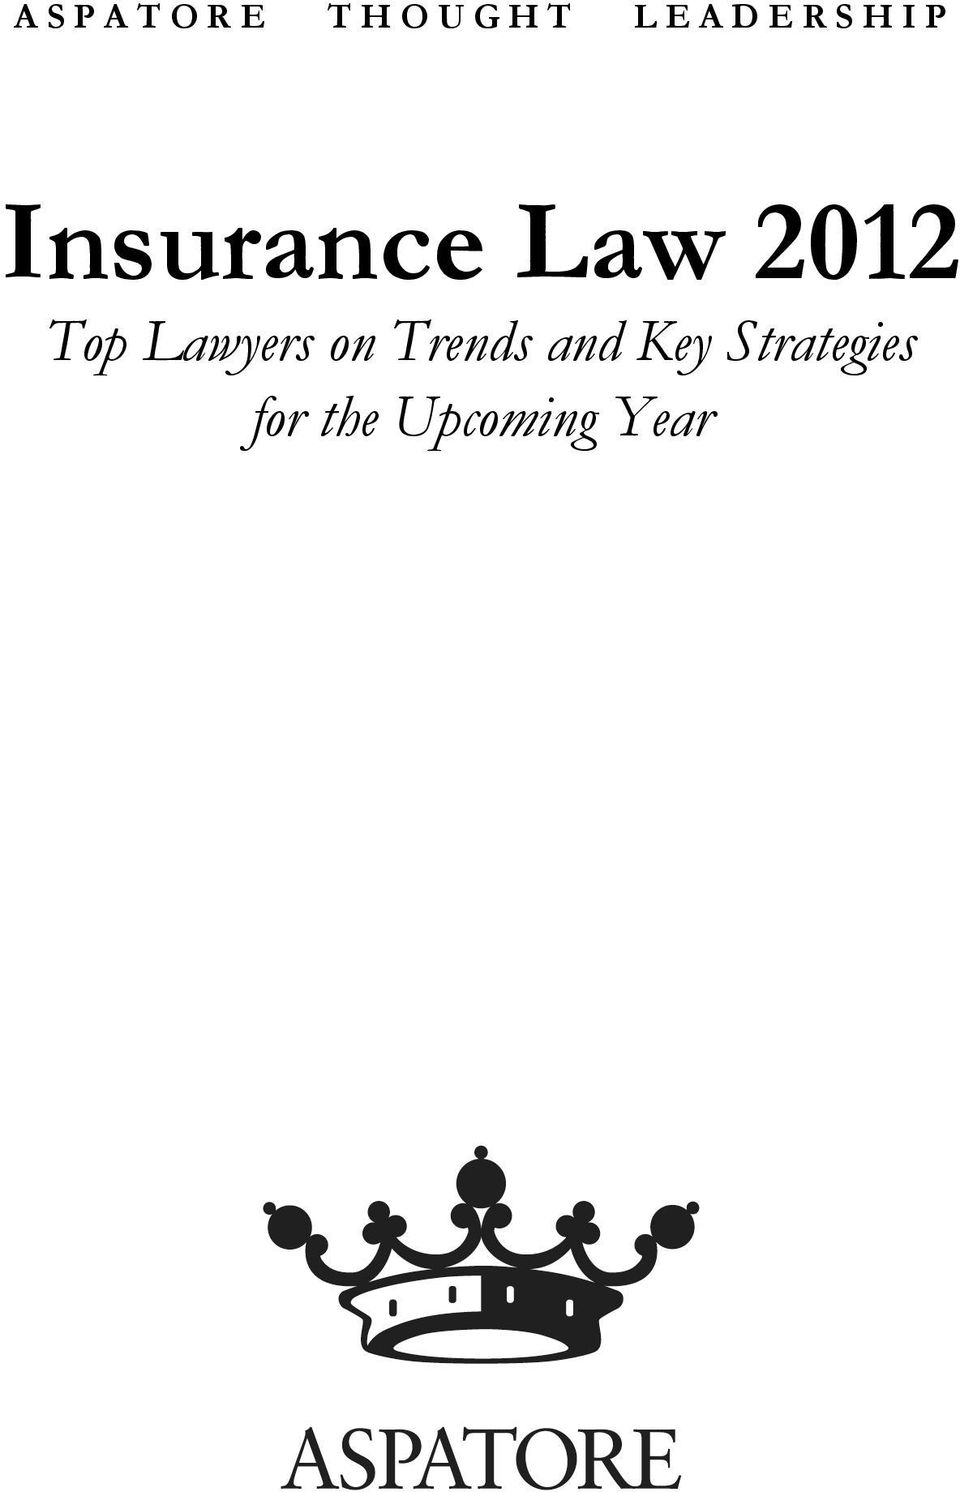 2012 Top Lawyers on Trends and